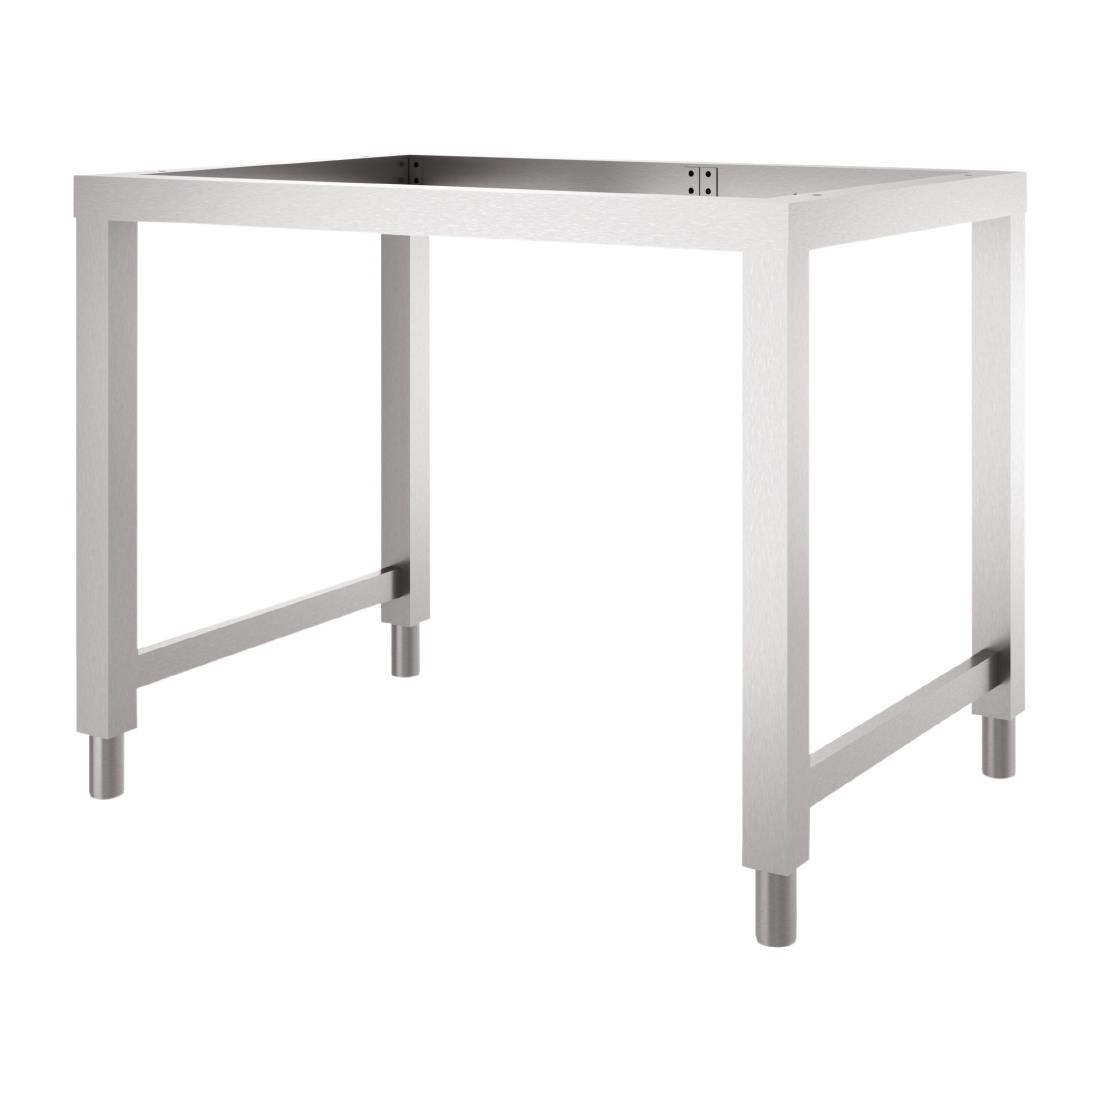 Image of Lainox Stainless Steel Stand NSR061